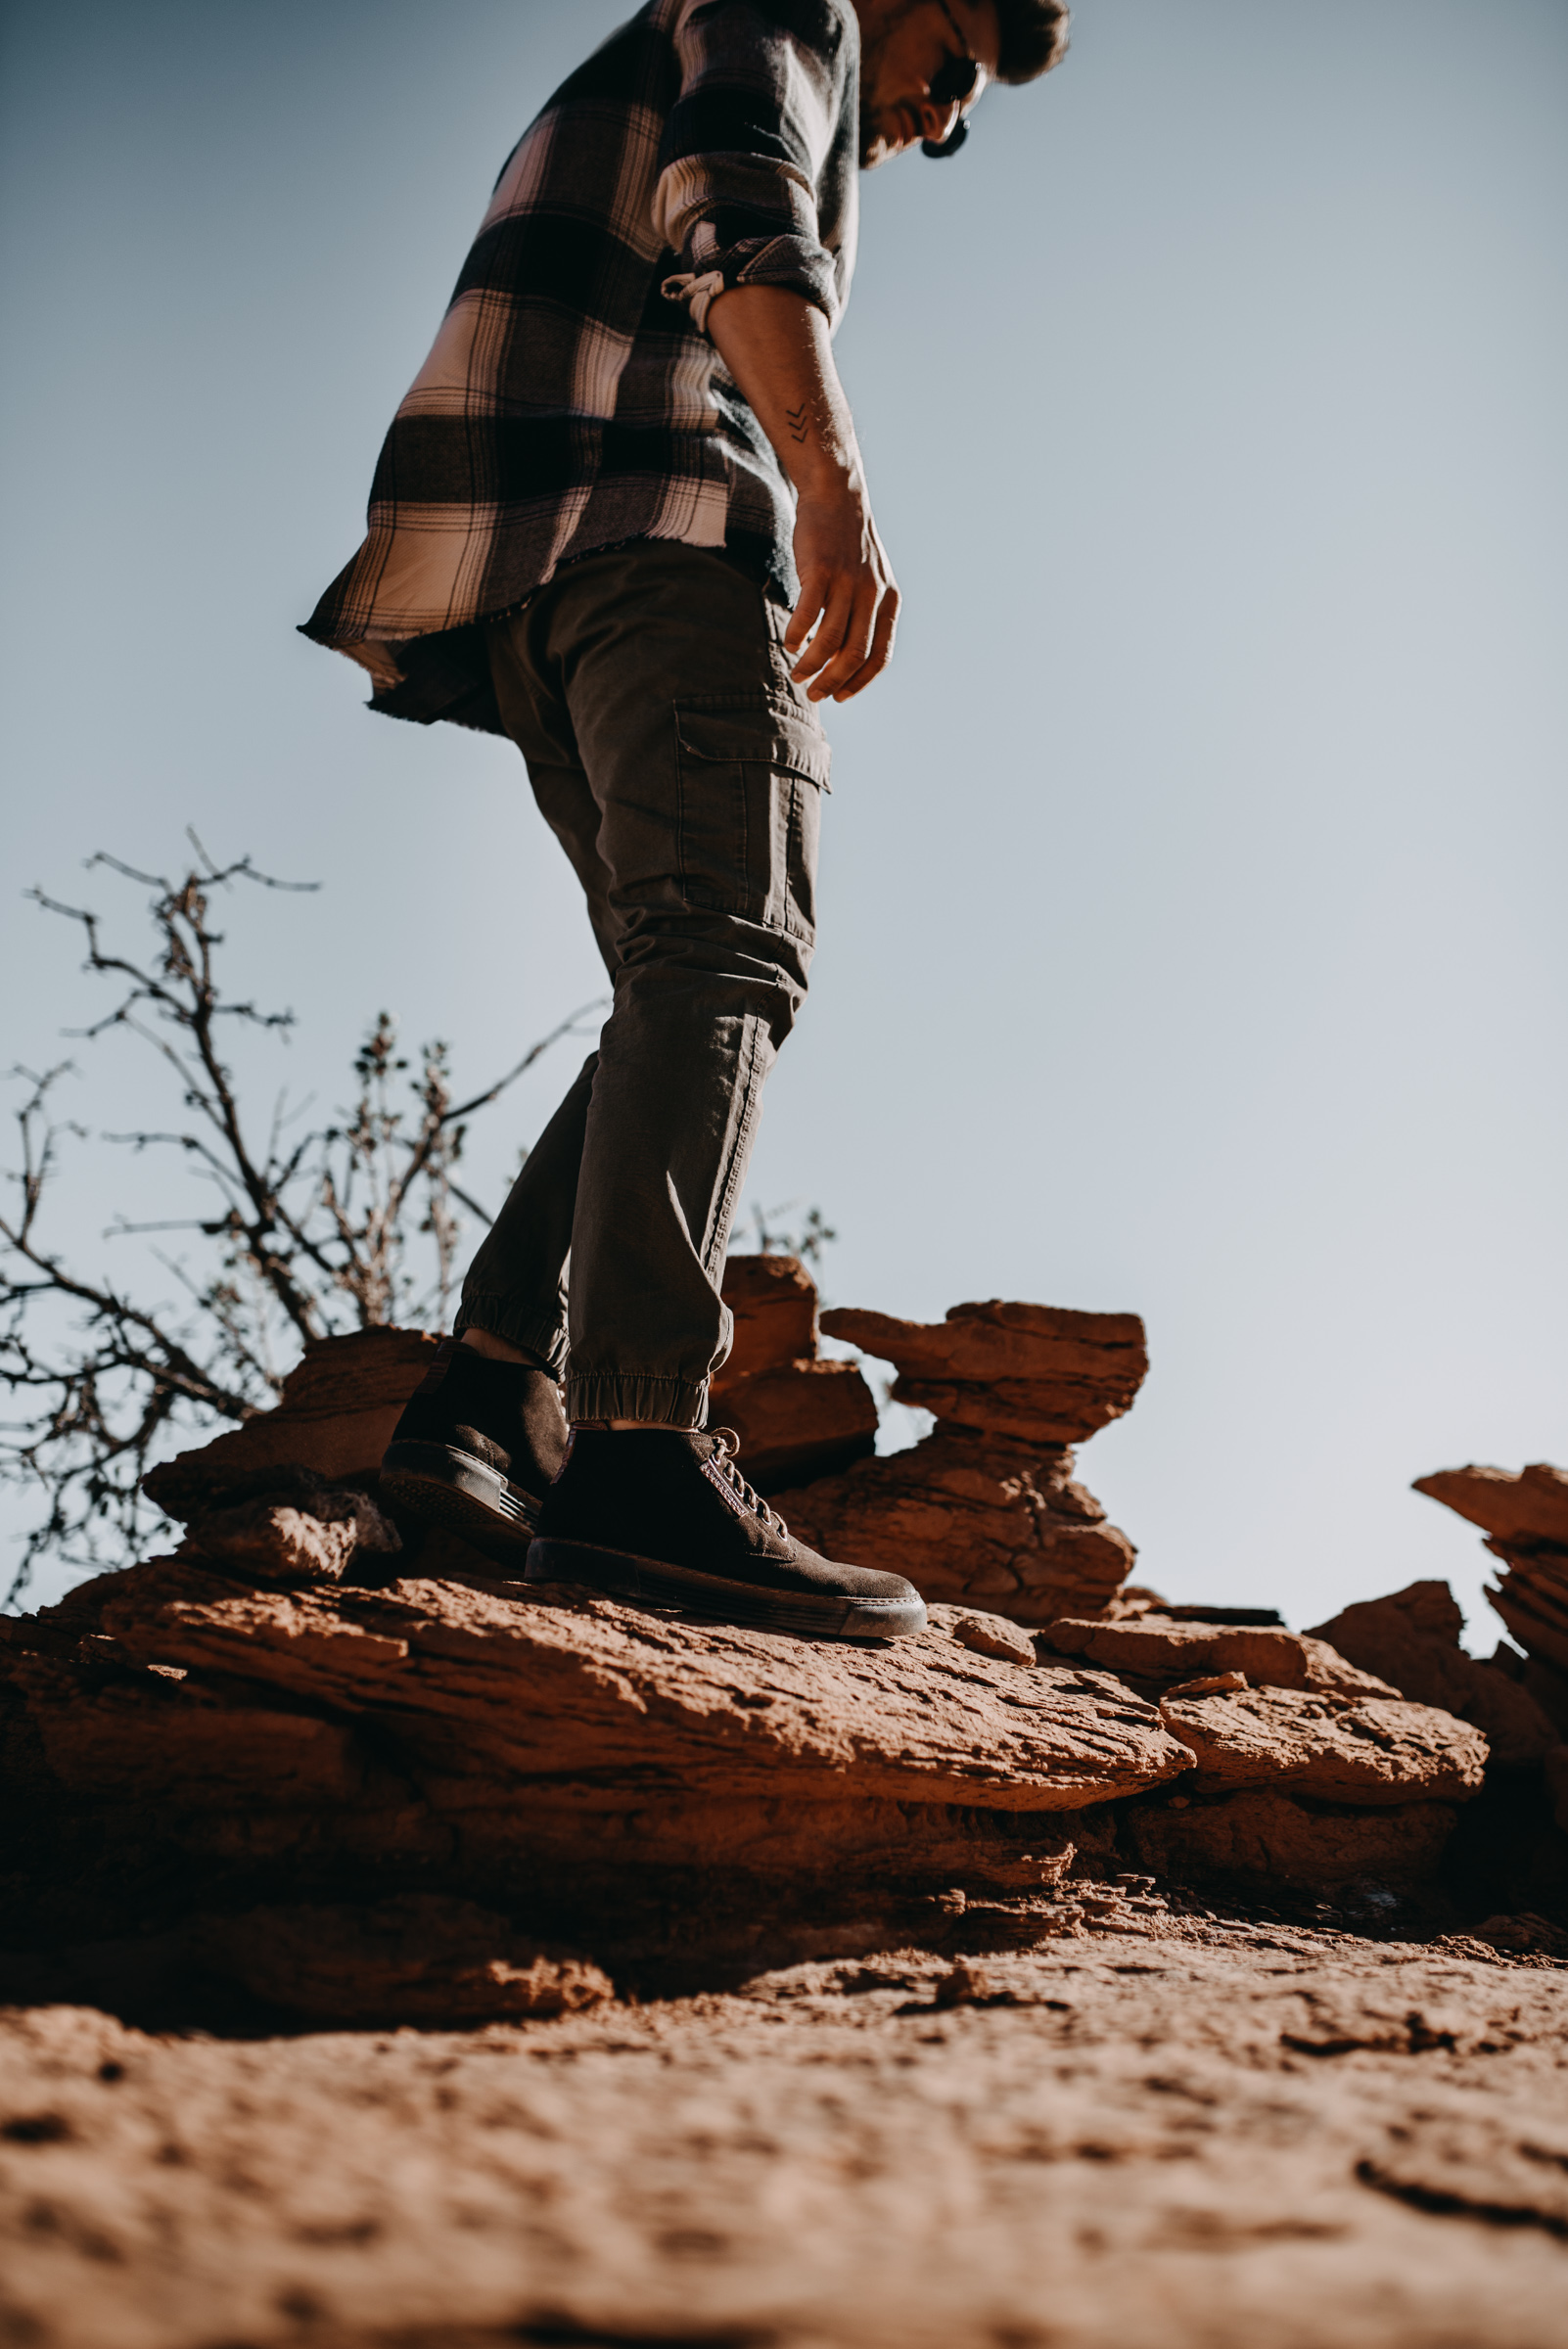 Tommeezjerry-Lifestyleblog-Fashionblog-Maennermodeblog-Maennerblog-Modeblog-Camel-Active-Boots-Schnuerboots-Casual-Outdoor-Outdoorstyle-Moderngentleman-Style-Guidebook